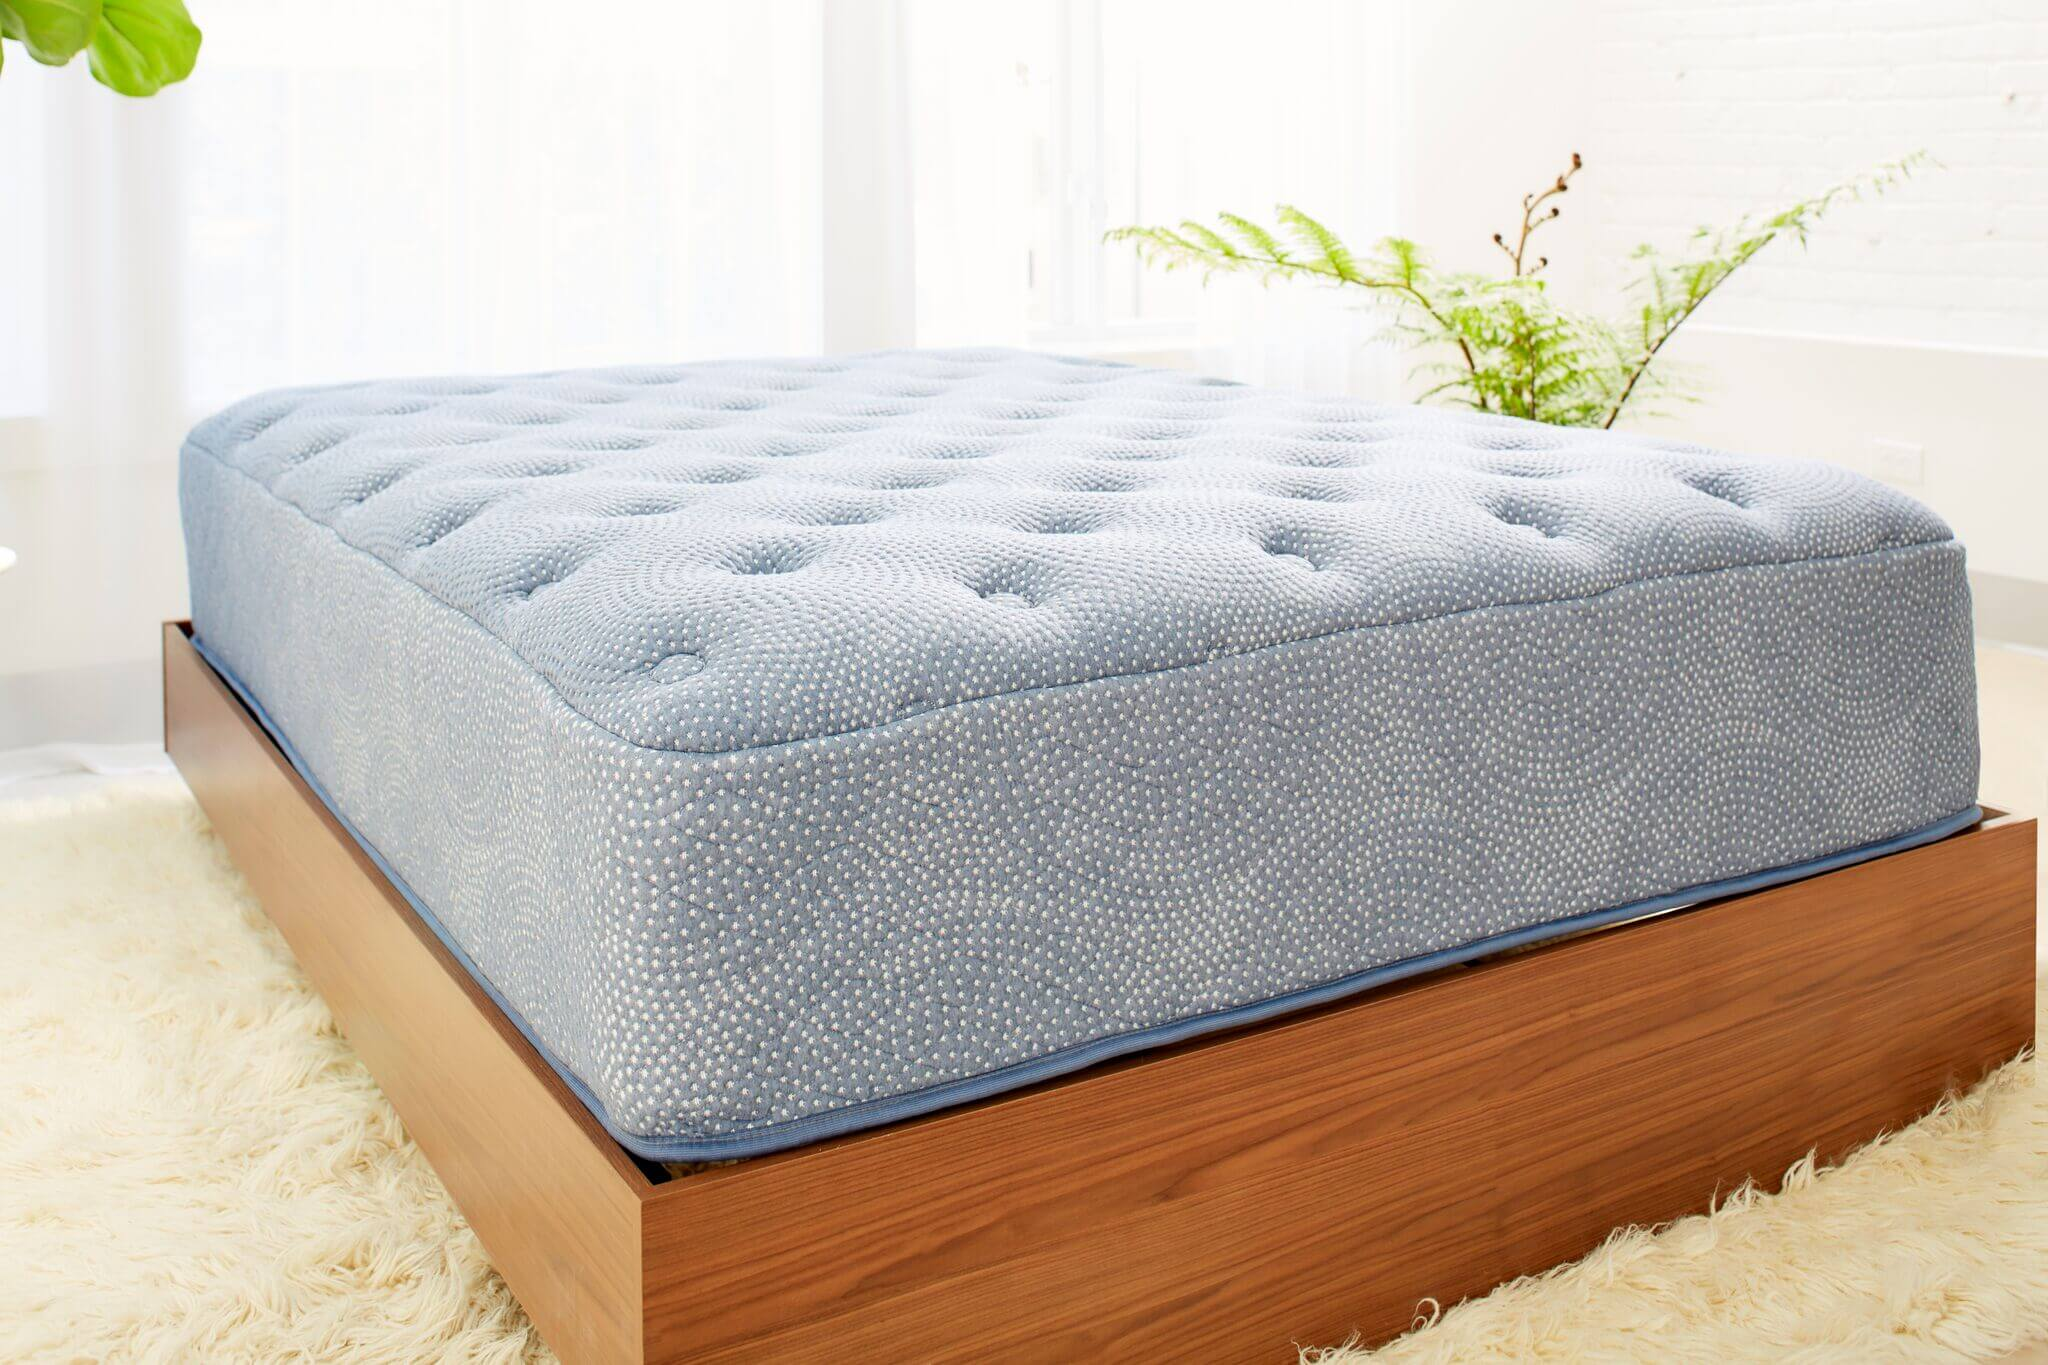 luft mattress giveaway, mattress giveaway, luft mattress, girl on the mattress giveaways